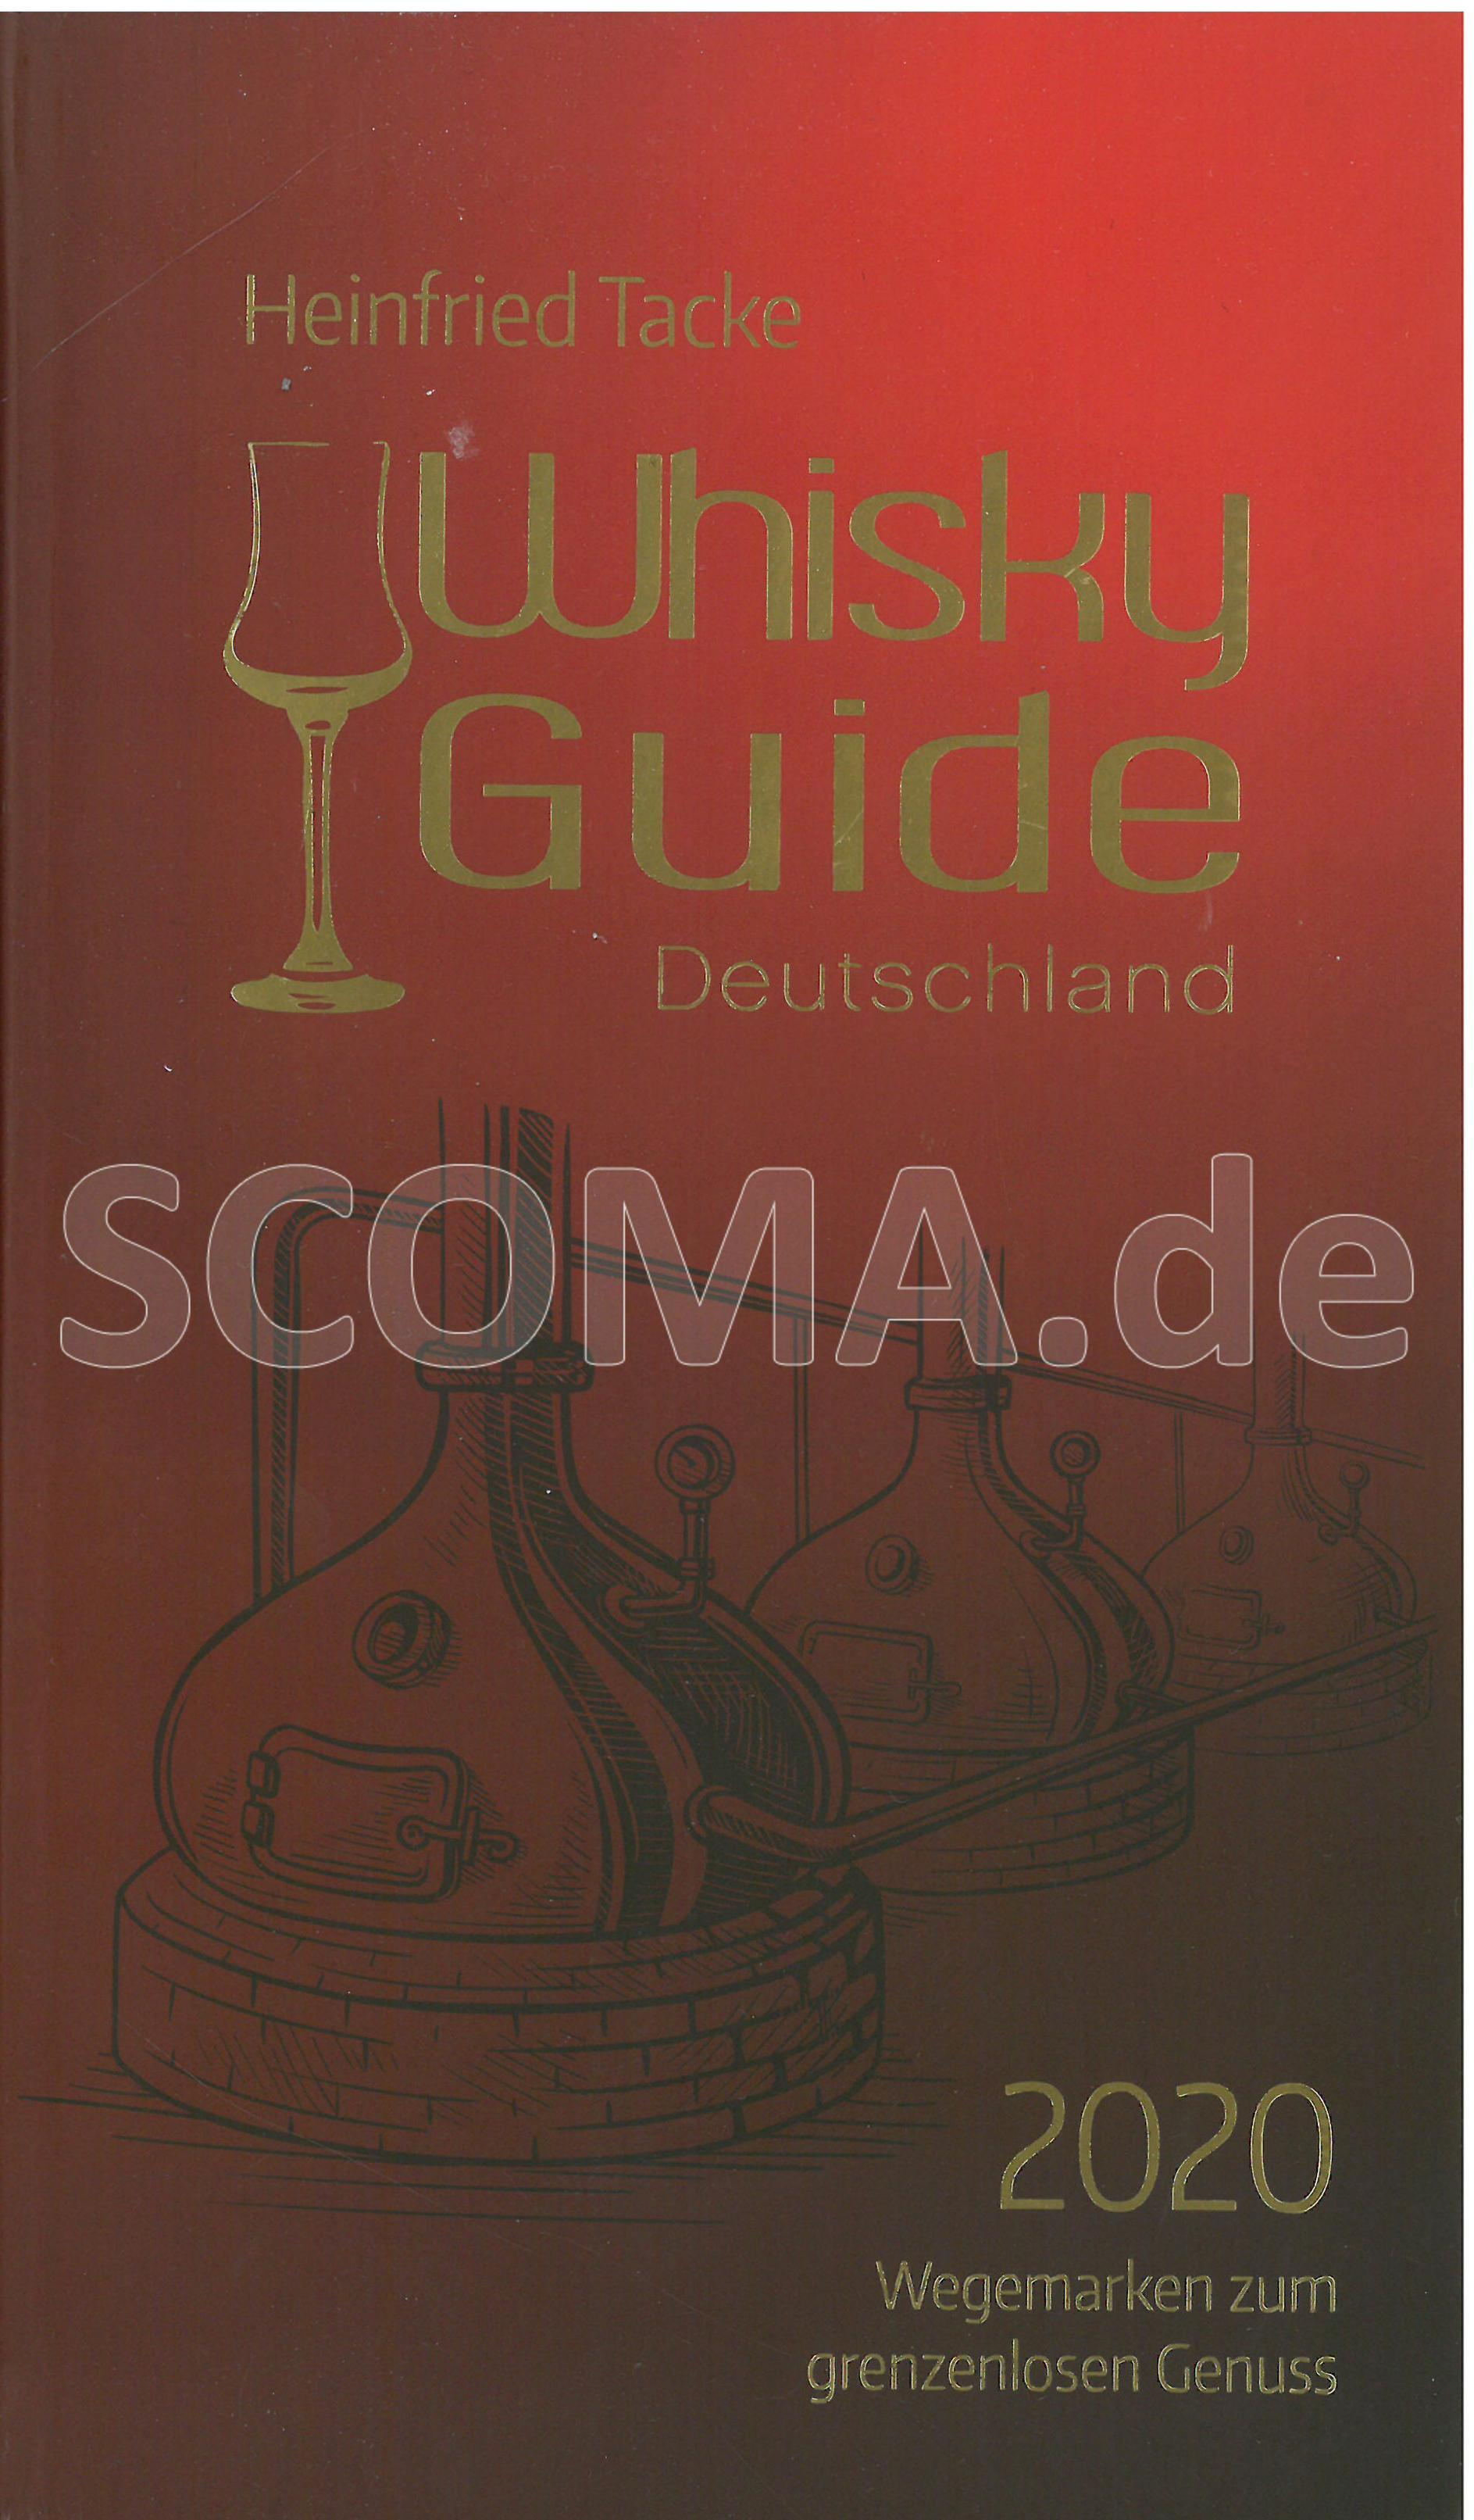 Tacke,Heinfried: Whisky Guide ...